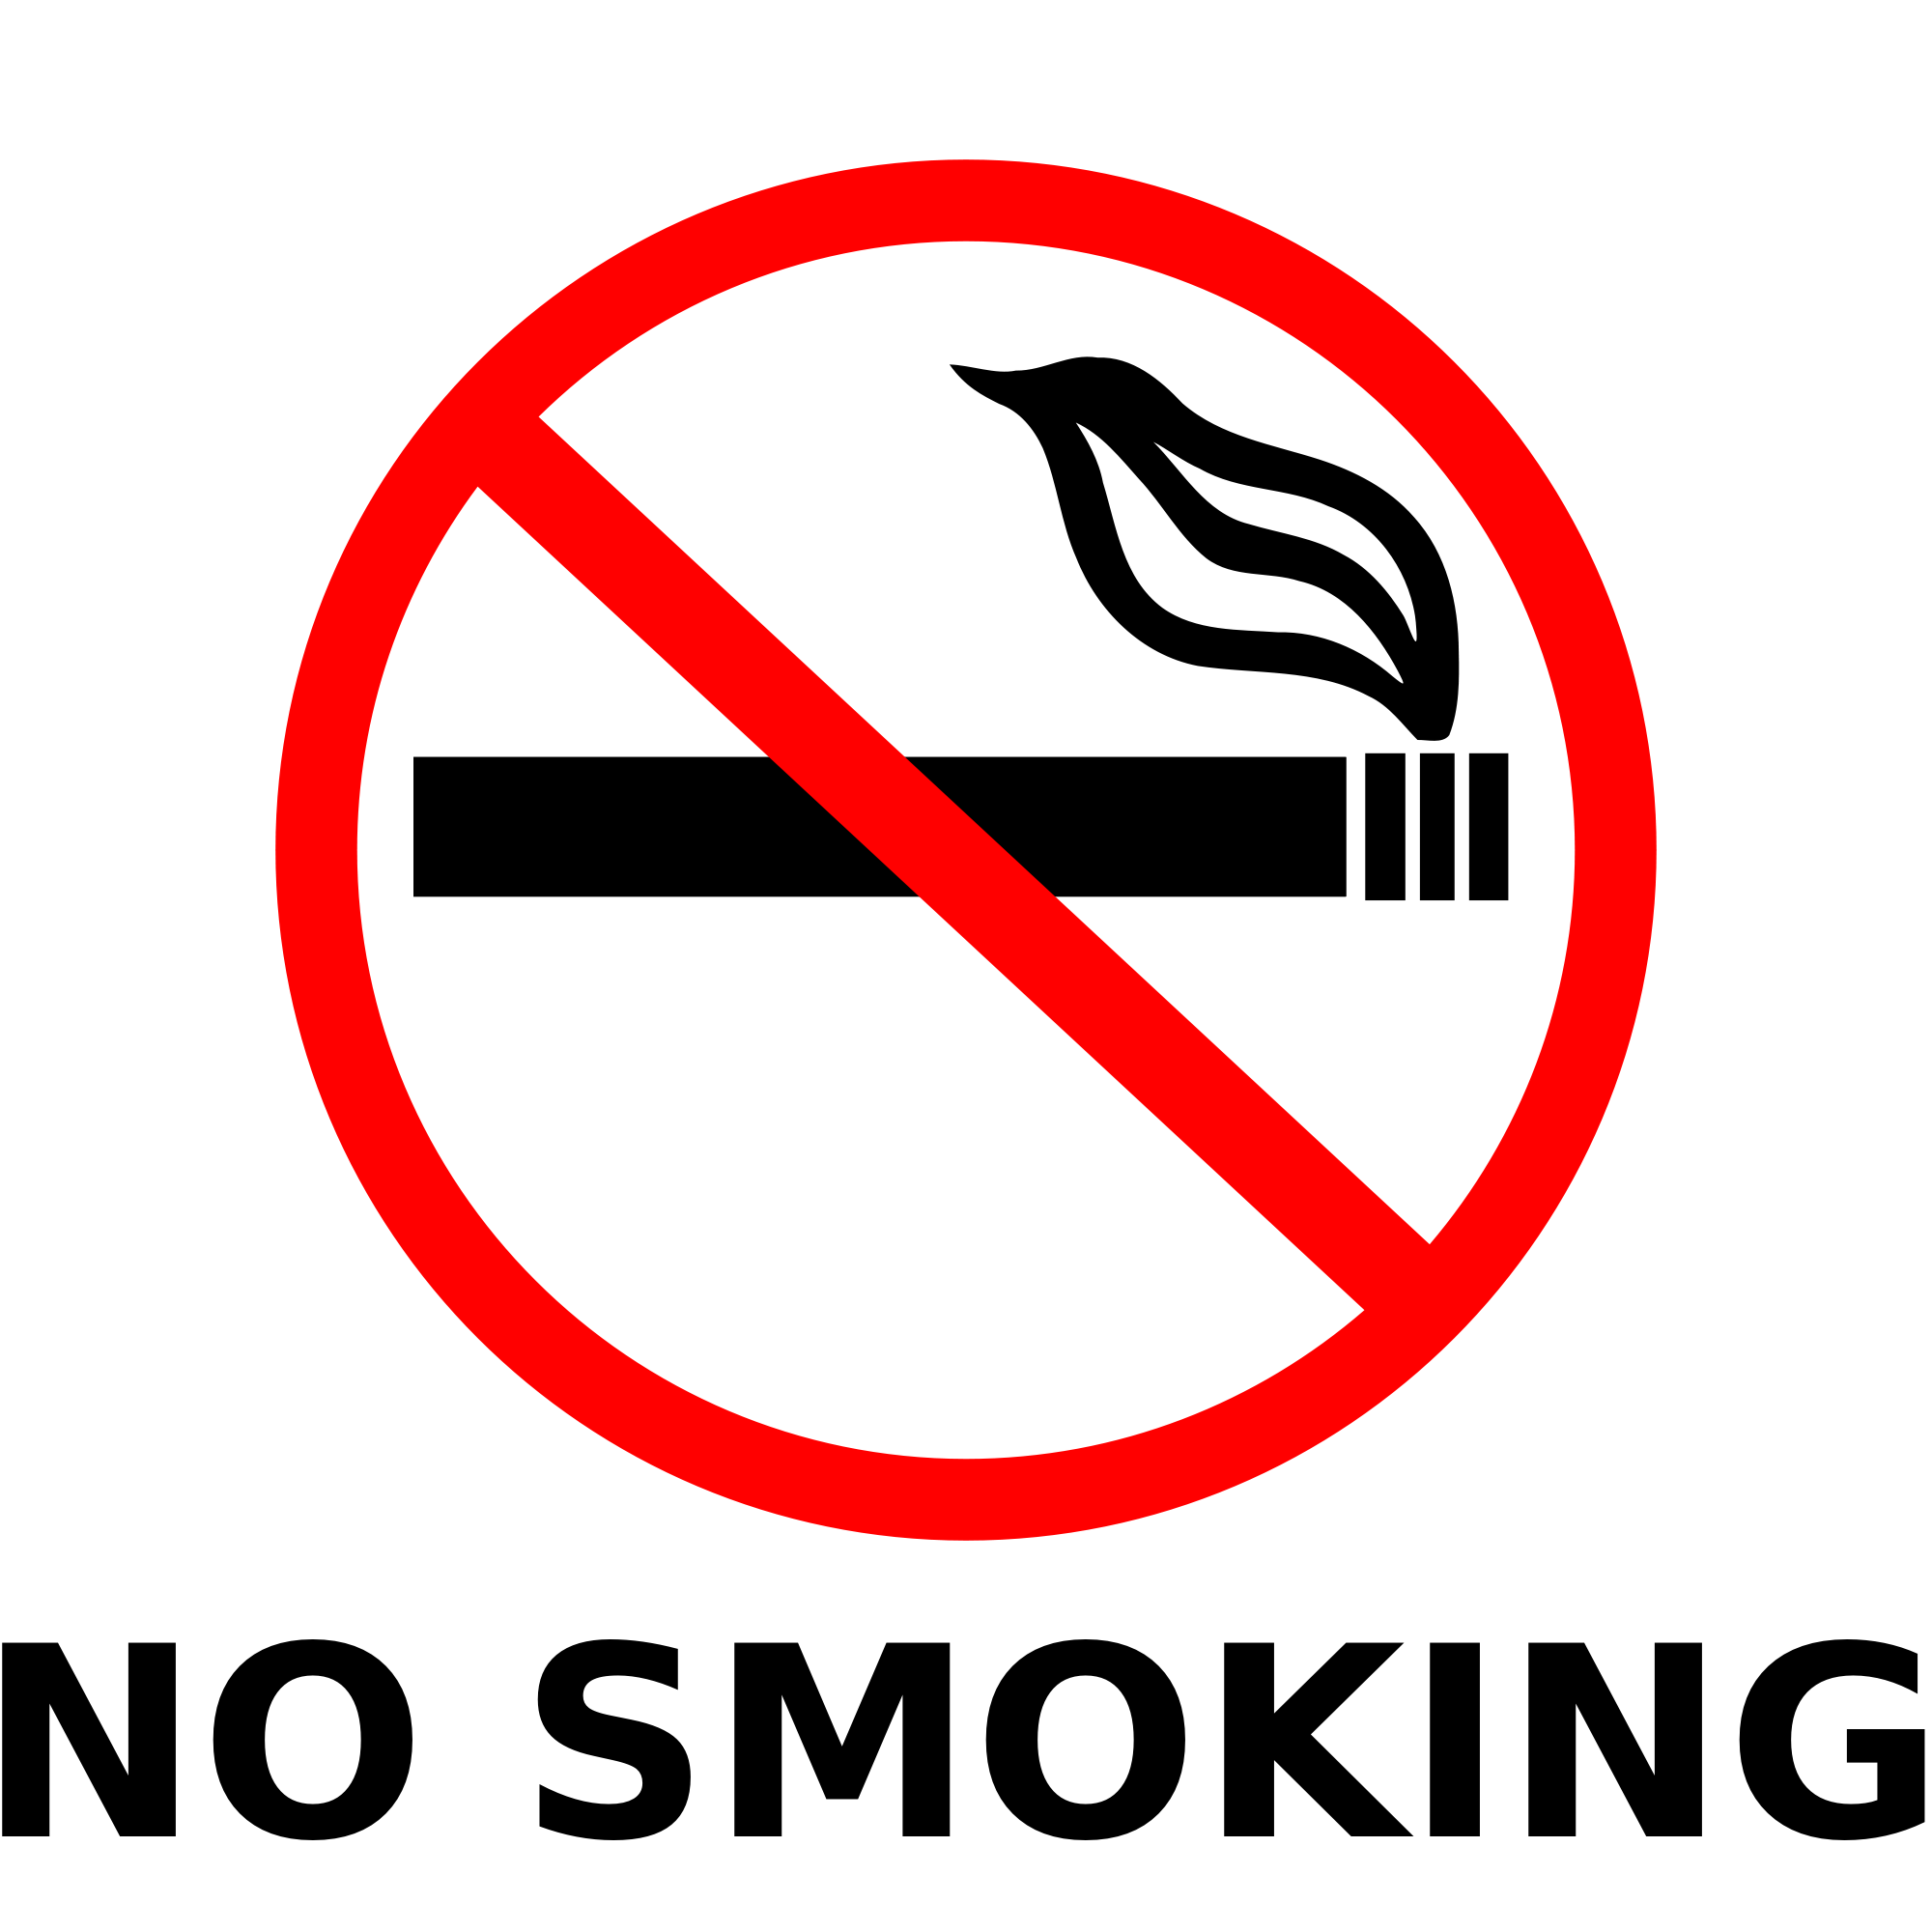 2000px-No_smoking_sign.svg